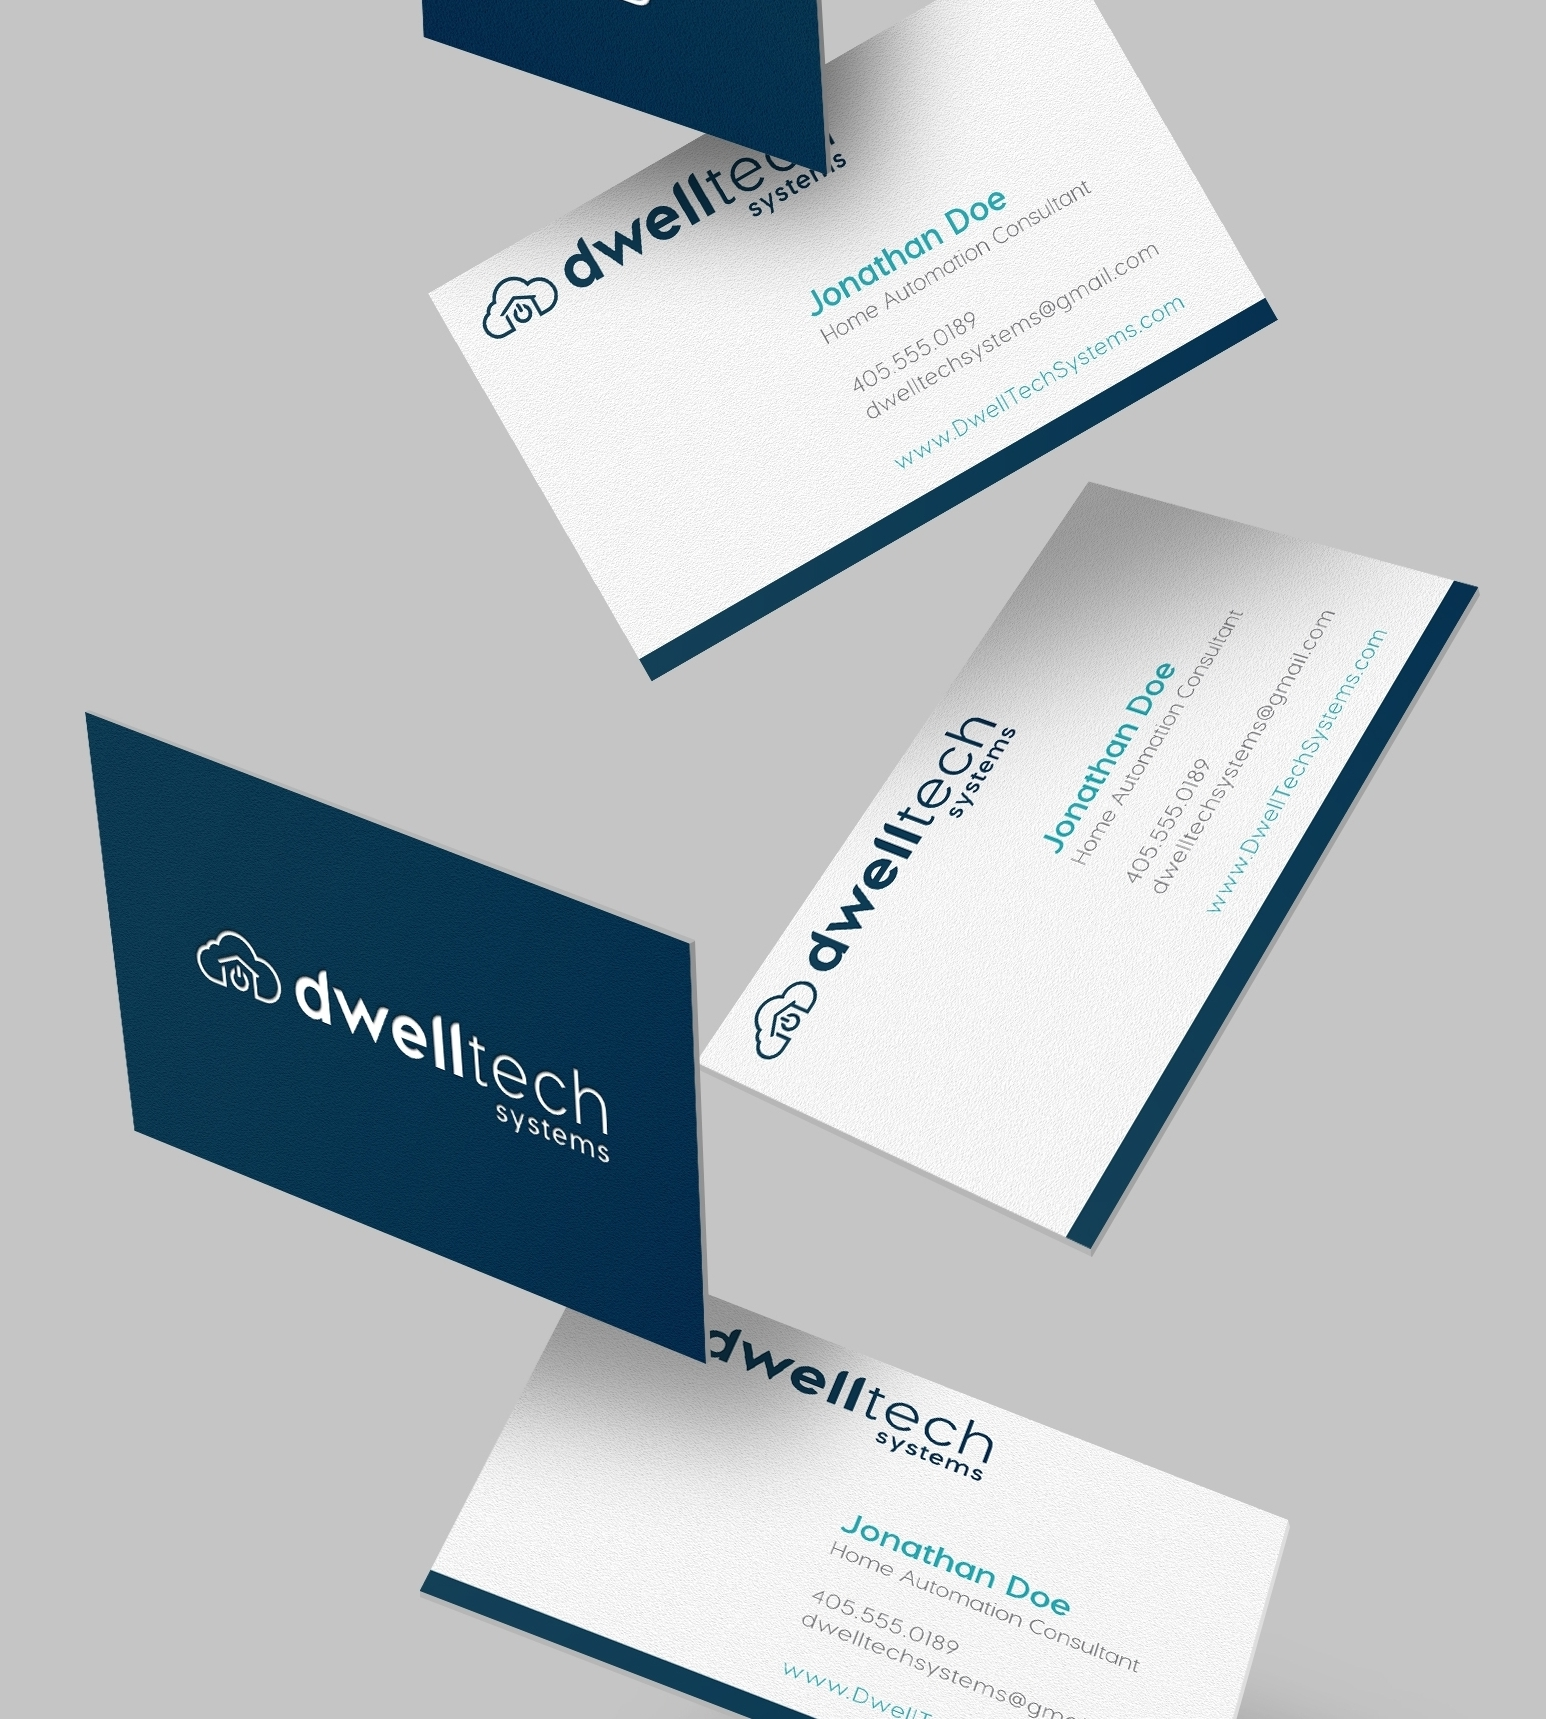 New Images Of Gm Business Card – Business Cards and Resume